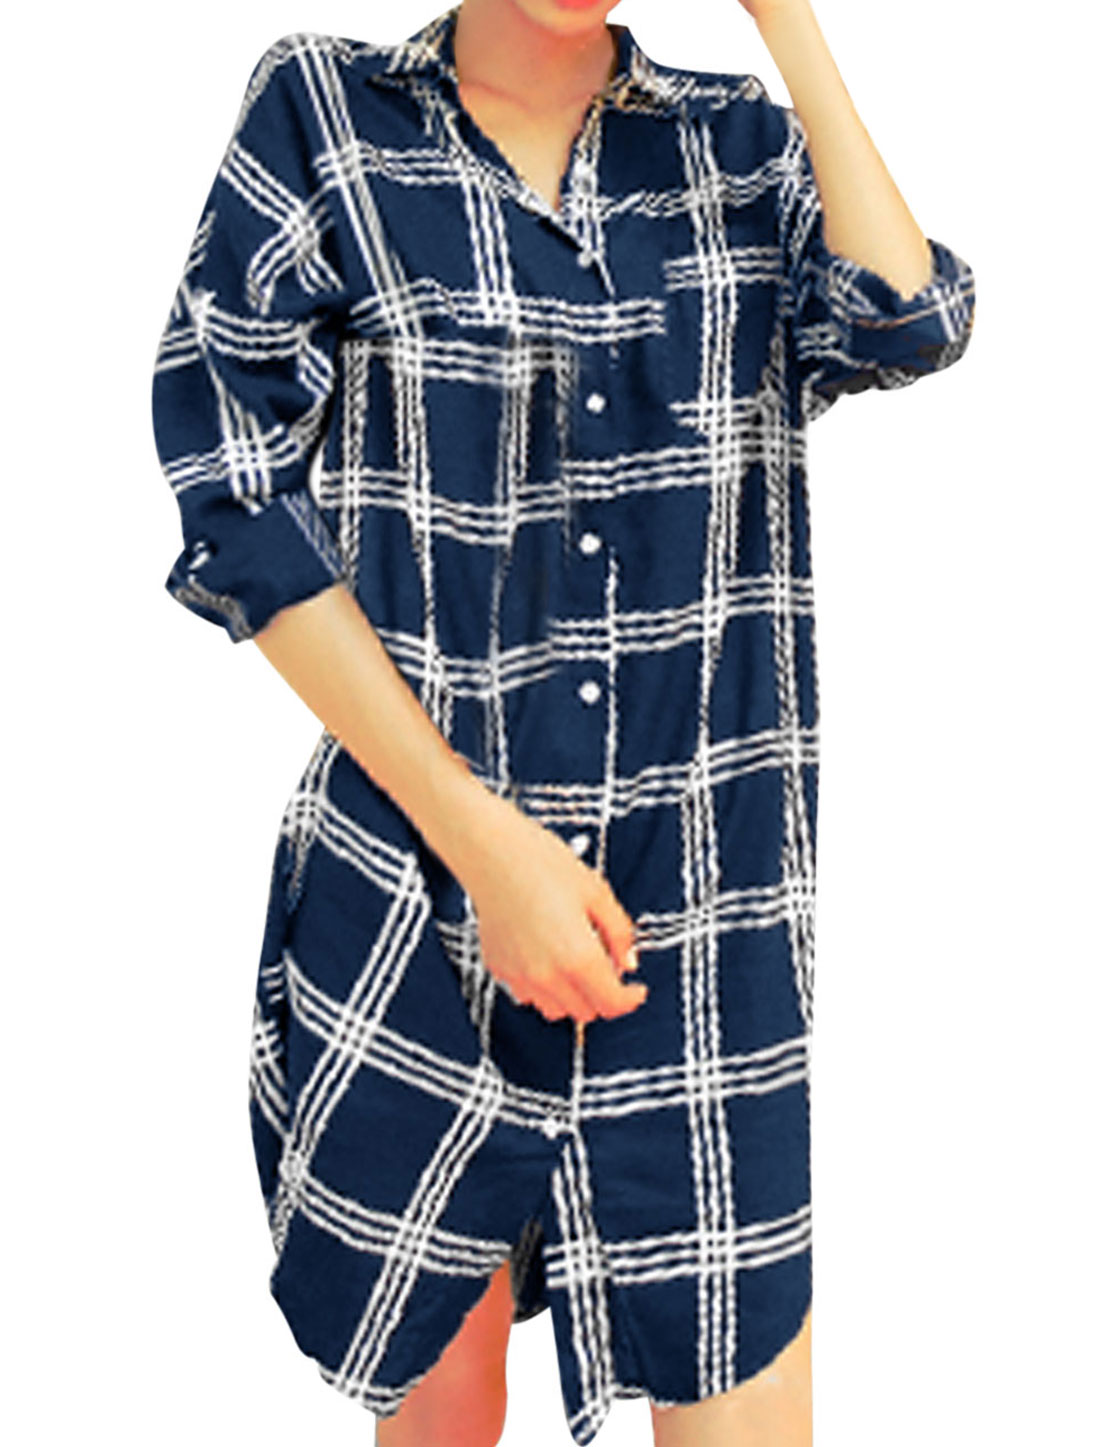 Lady Plaids Pattern One Pocket Chest Tunic Shirt Navy Blue White XS